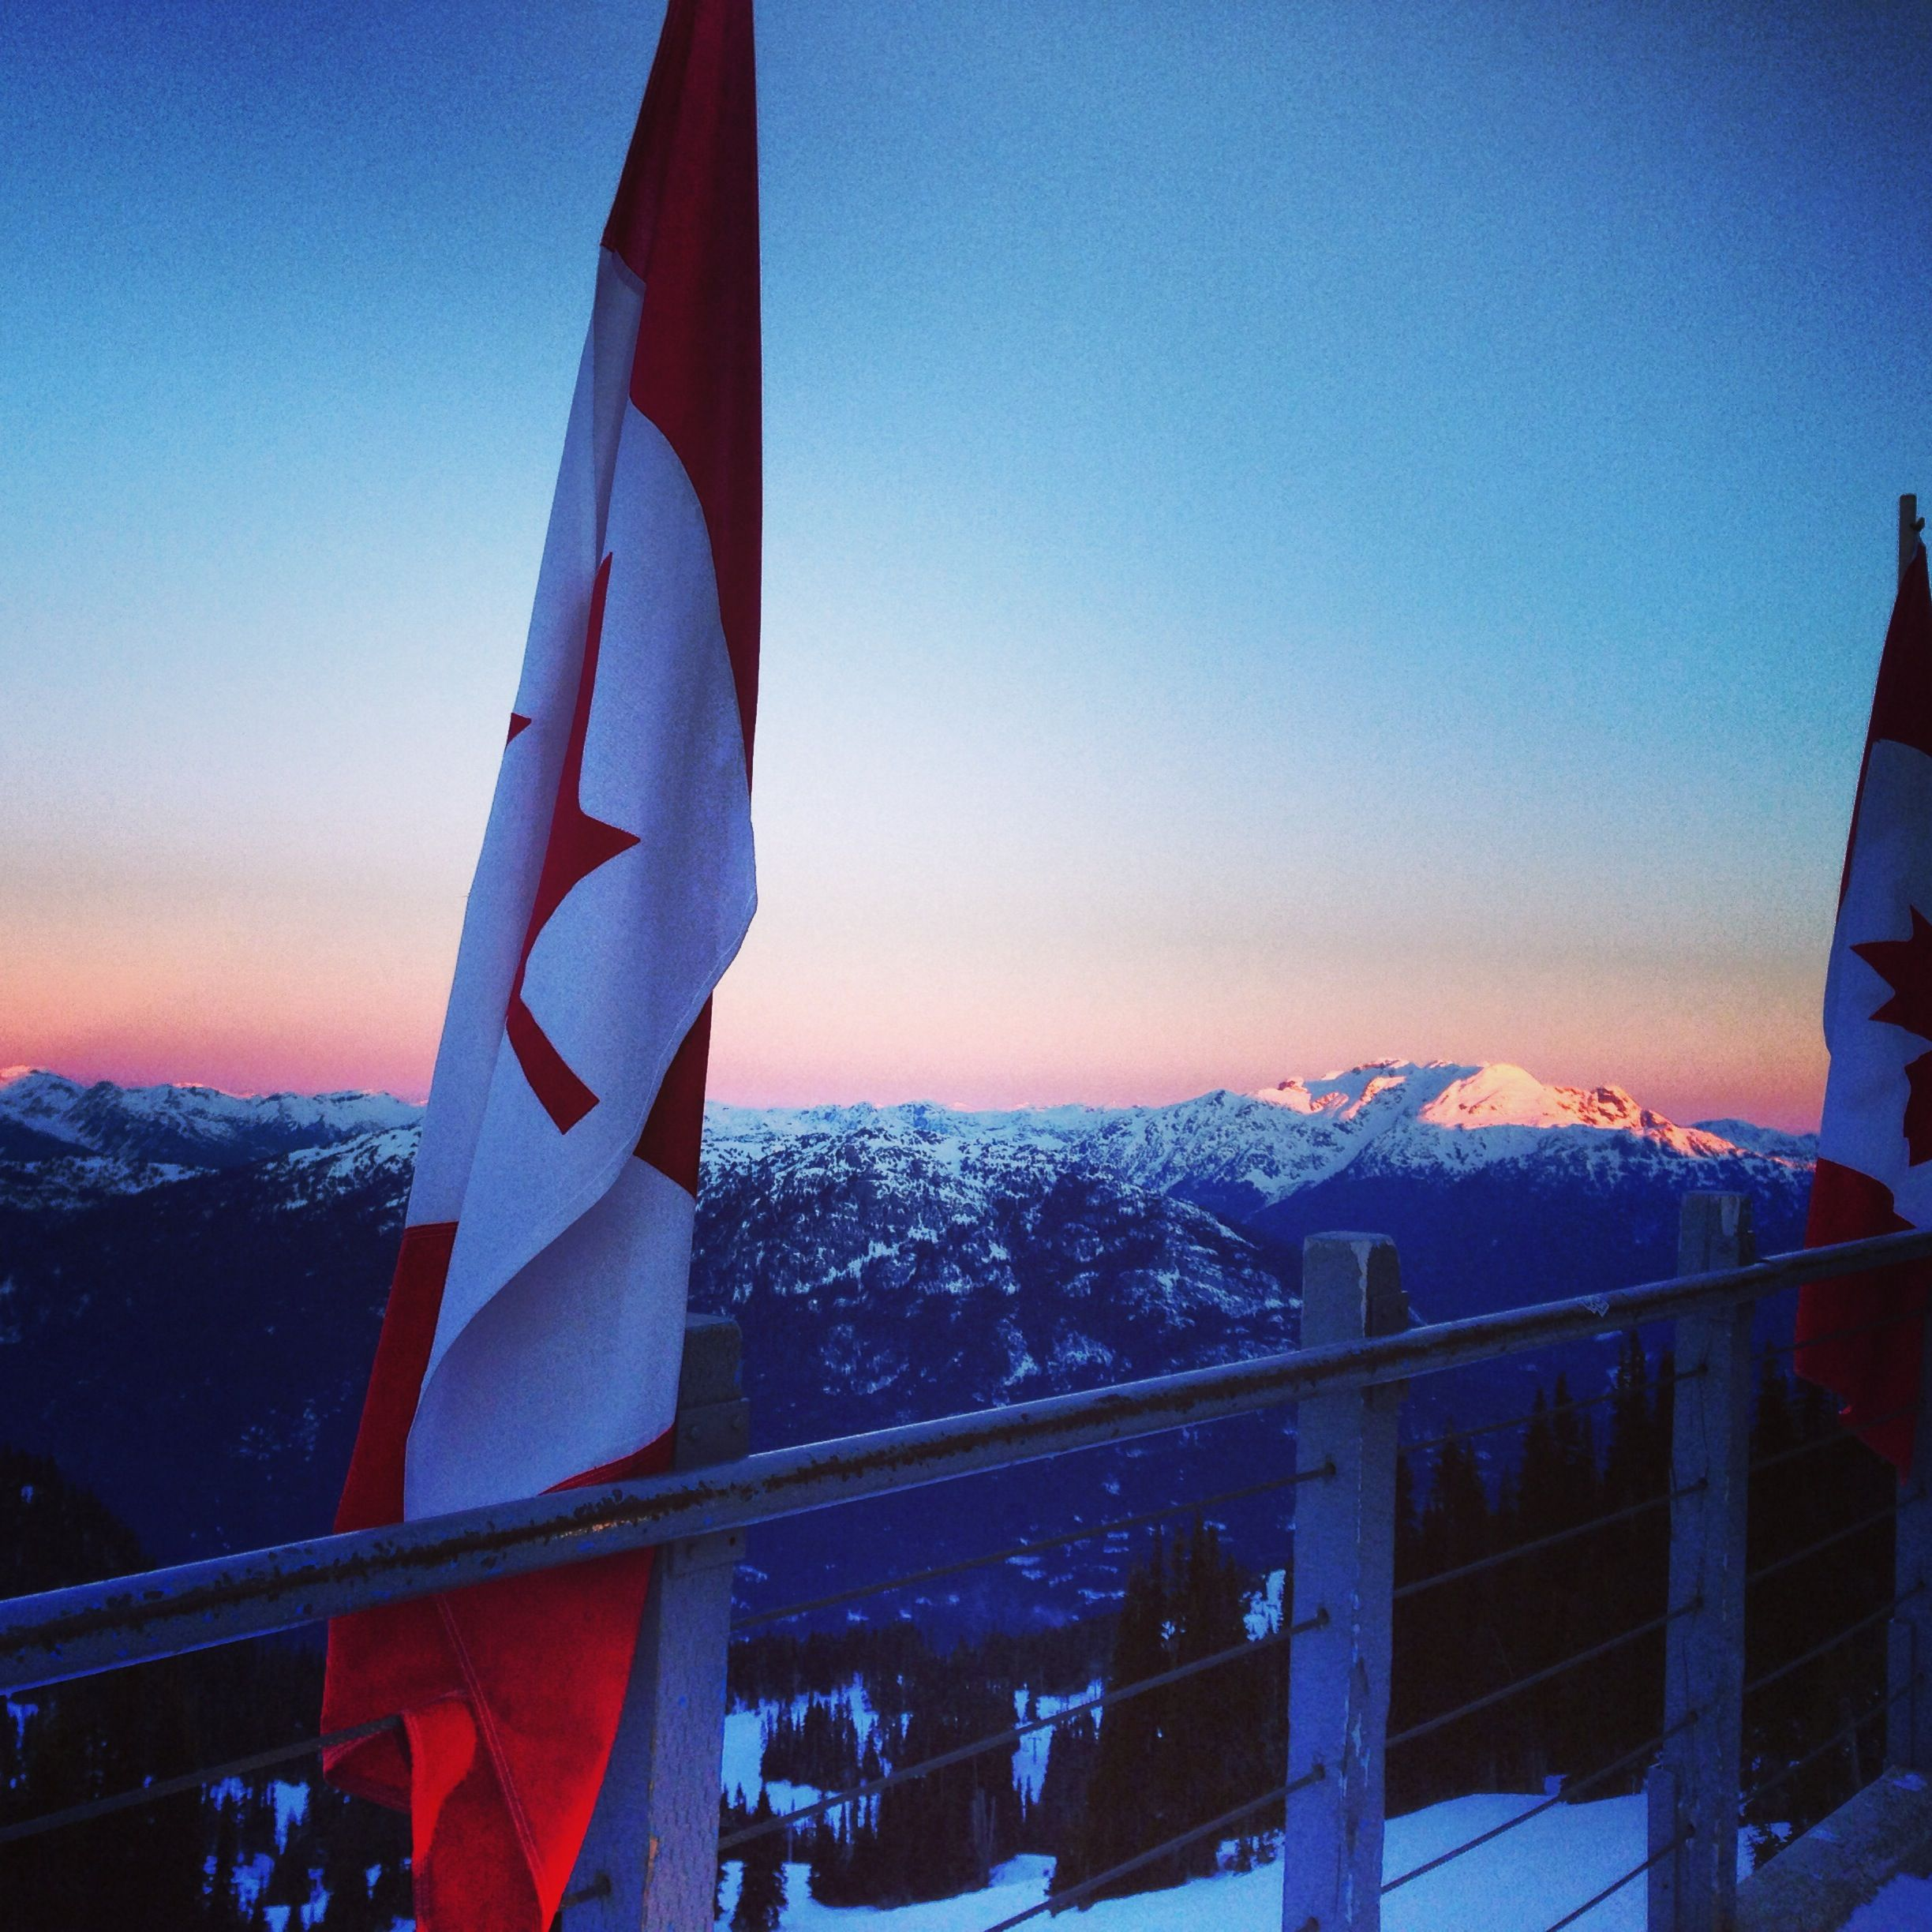 Watching the sunrise at fresh tracks on Whistler mountain. A must do while visiting the resort town!